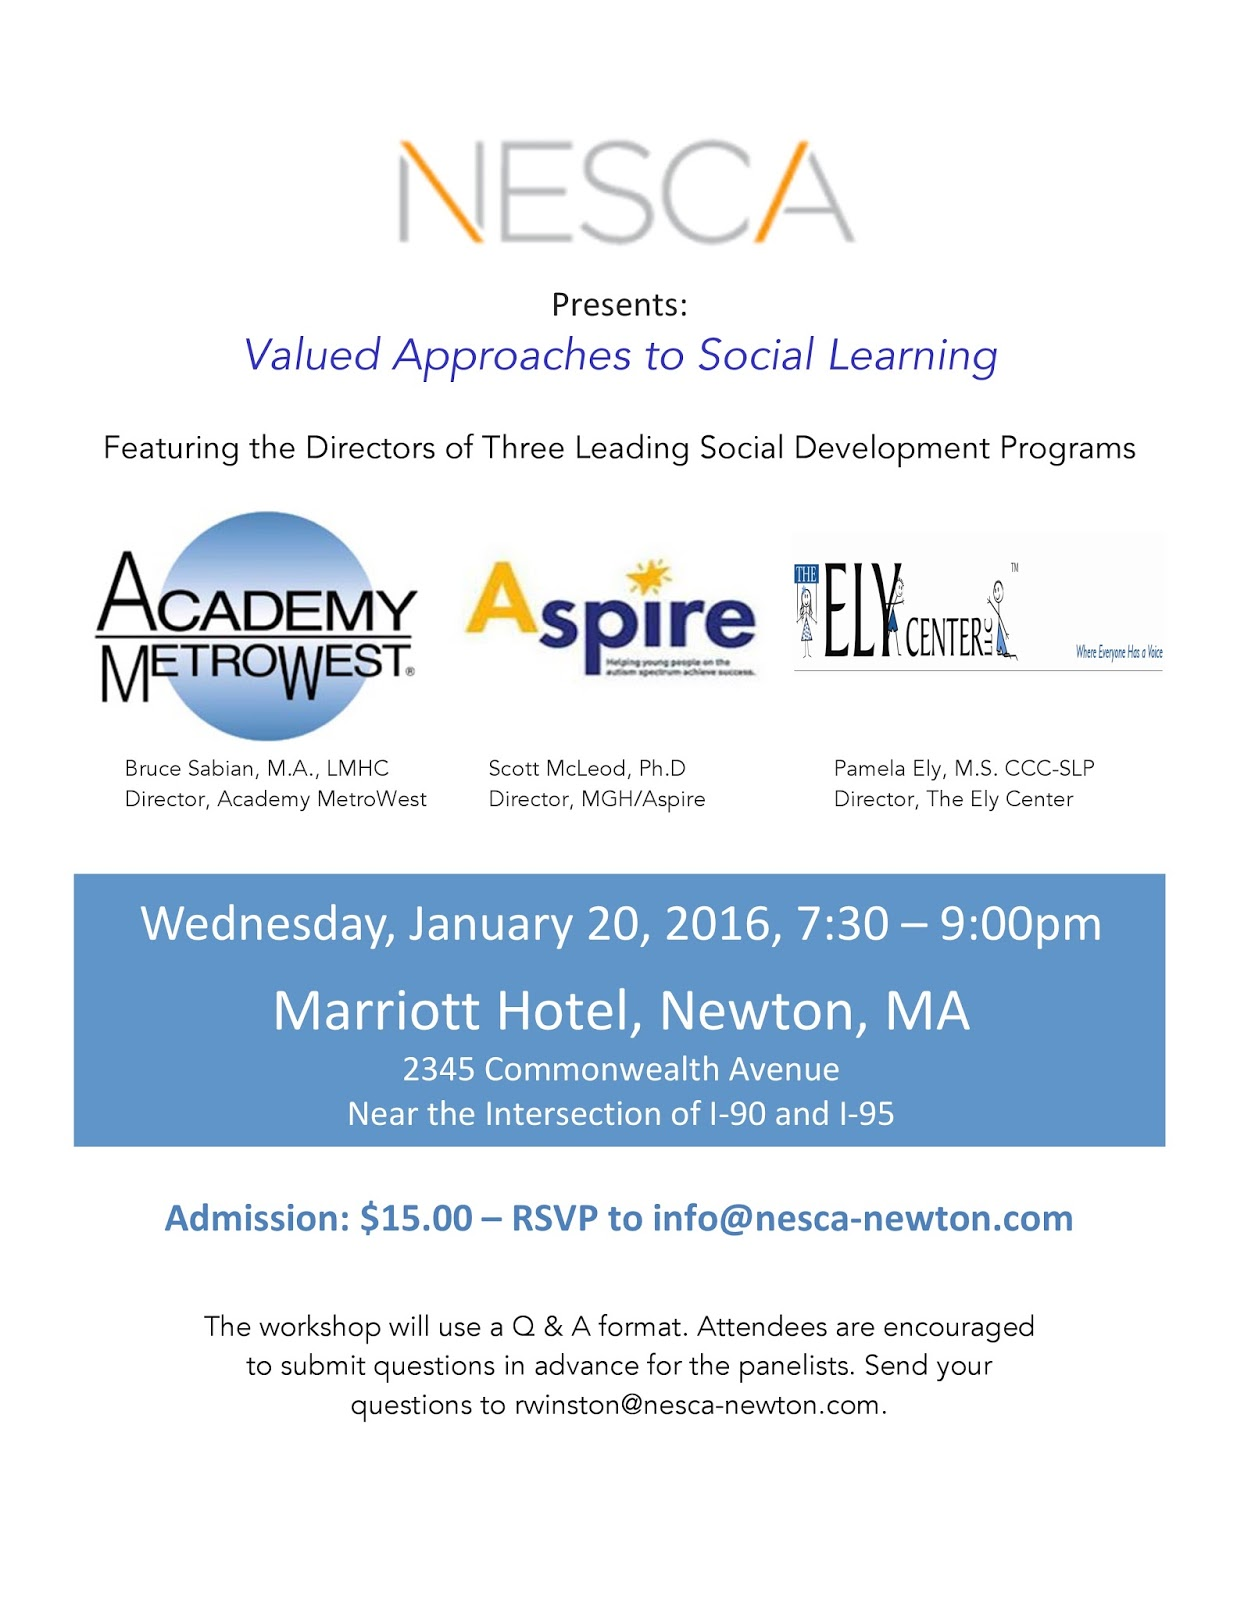 Nesca Presents Valued Approaches To >> Nesca News Notes Last Call Social Learning Workshop In Newton